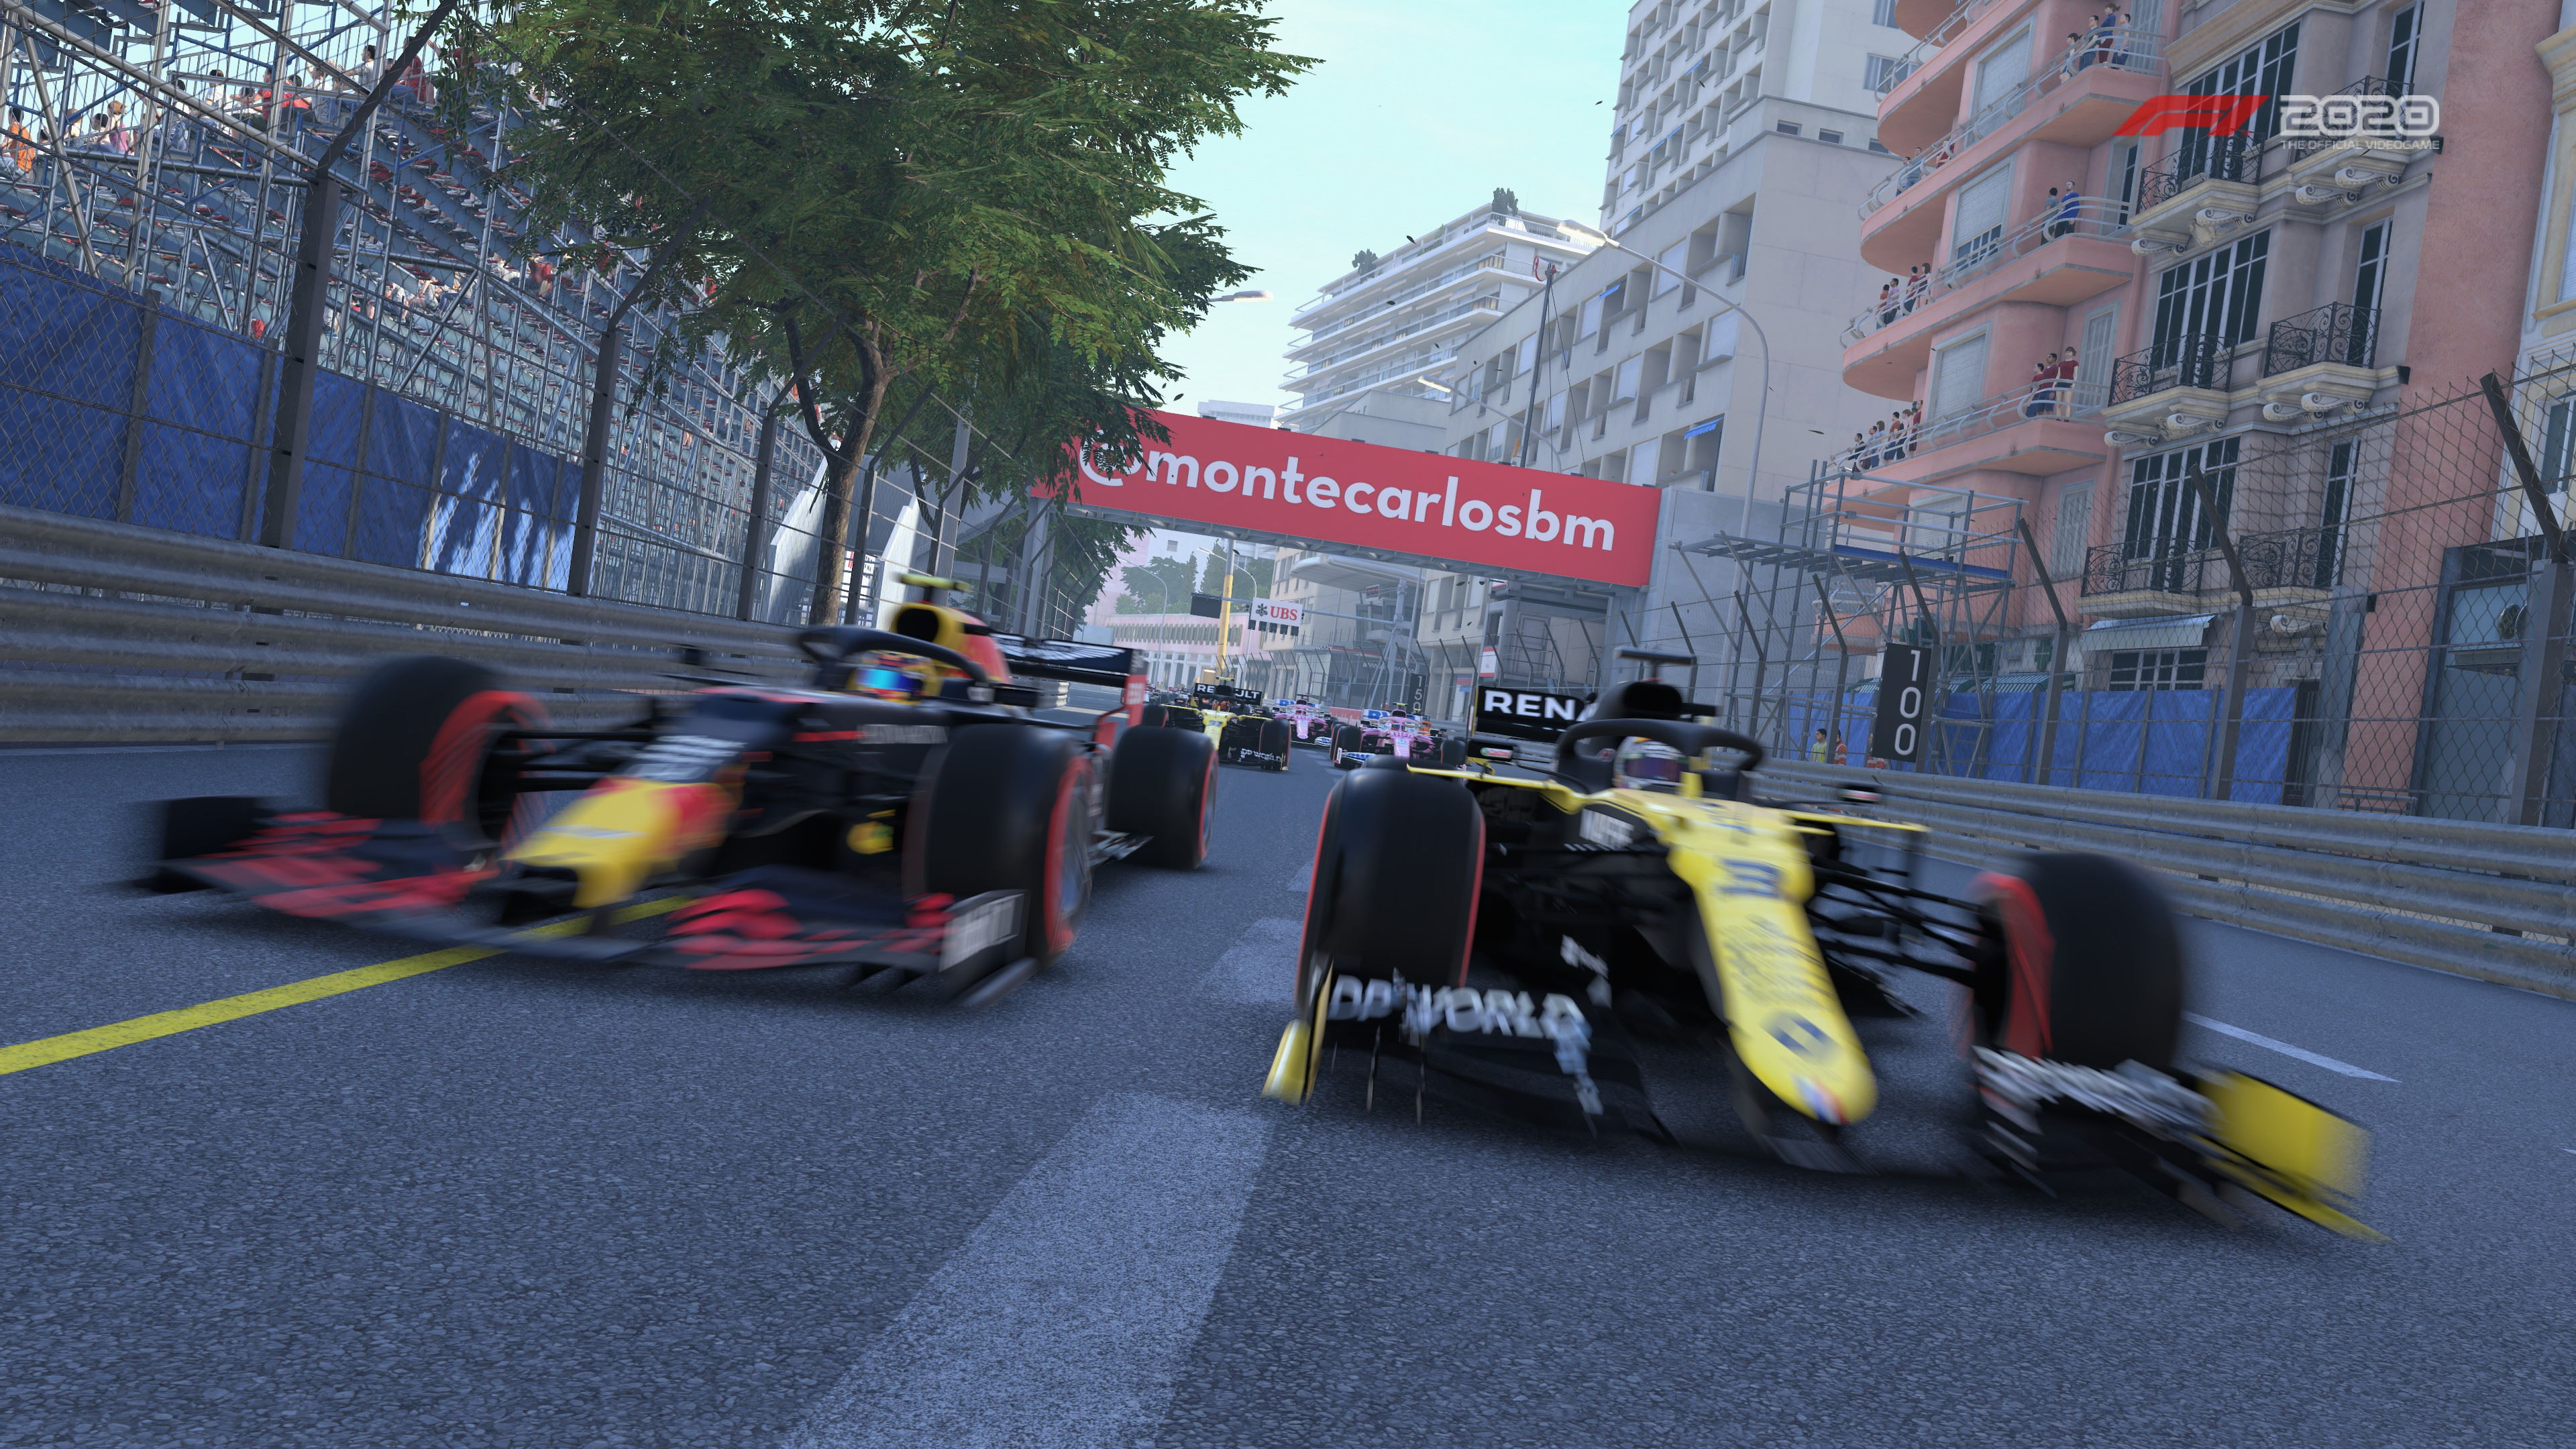 The sense of speed in F1 2020 can leave your hands shaking in terror.